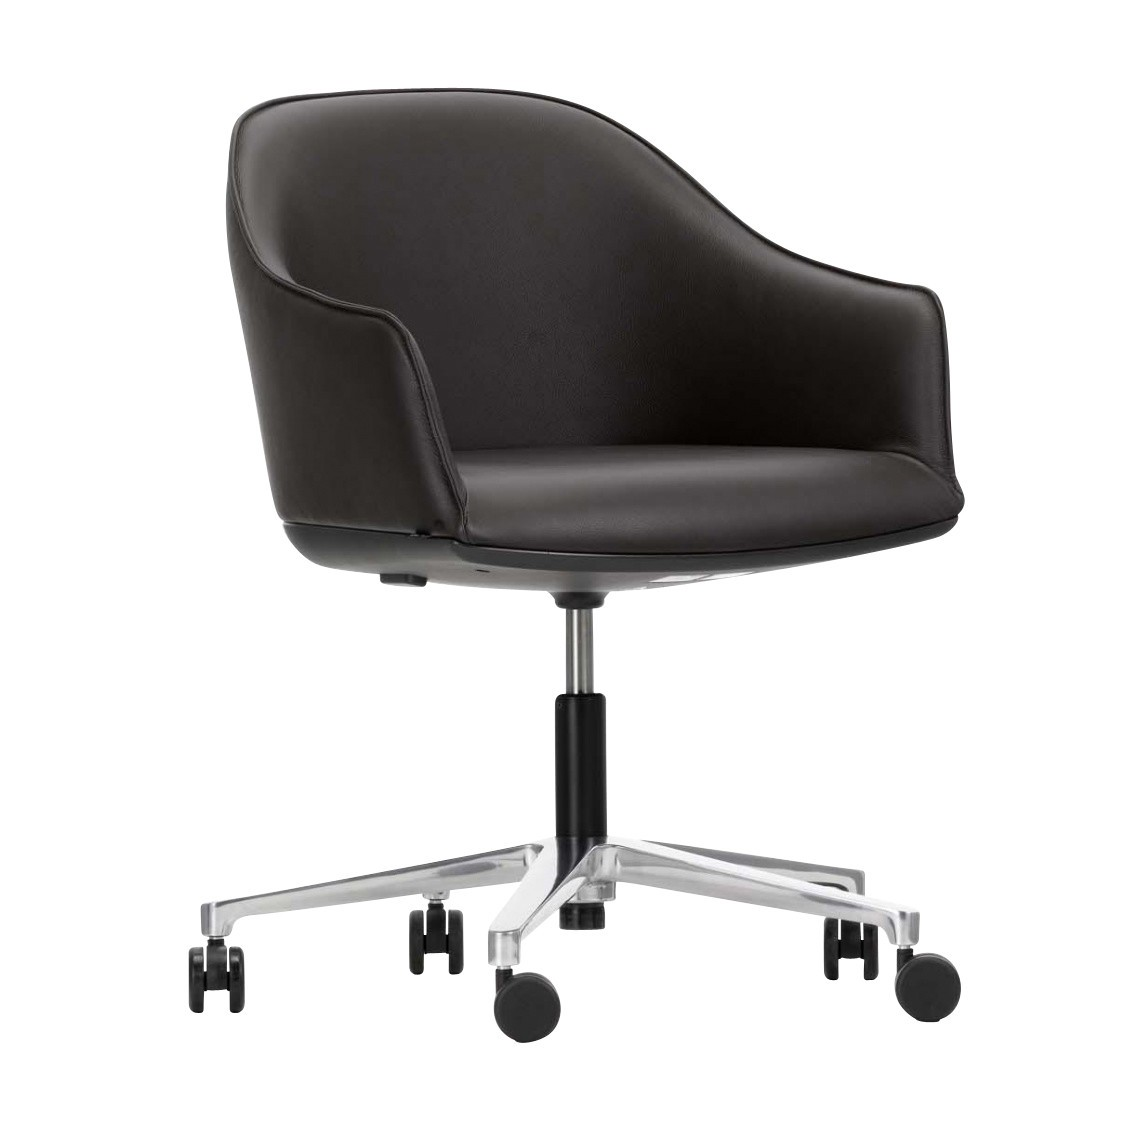 vitra ergonomic chair wheelchair ramp width softshell office ambientedirect nero black leather frame